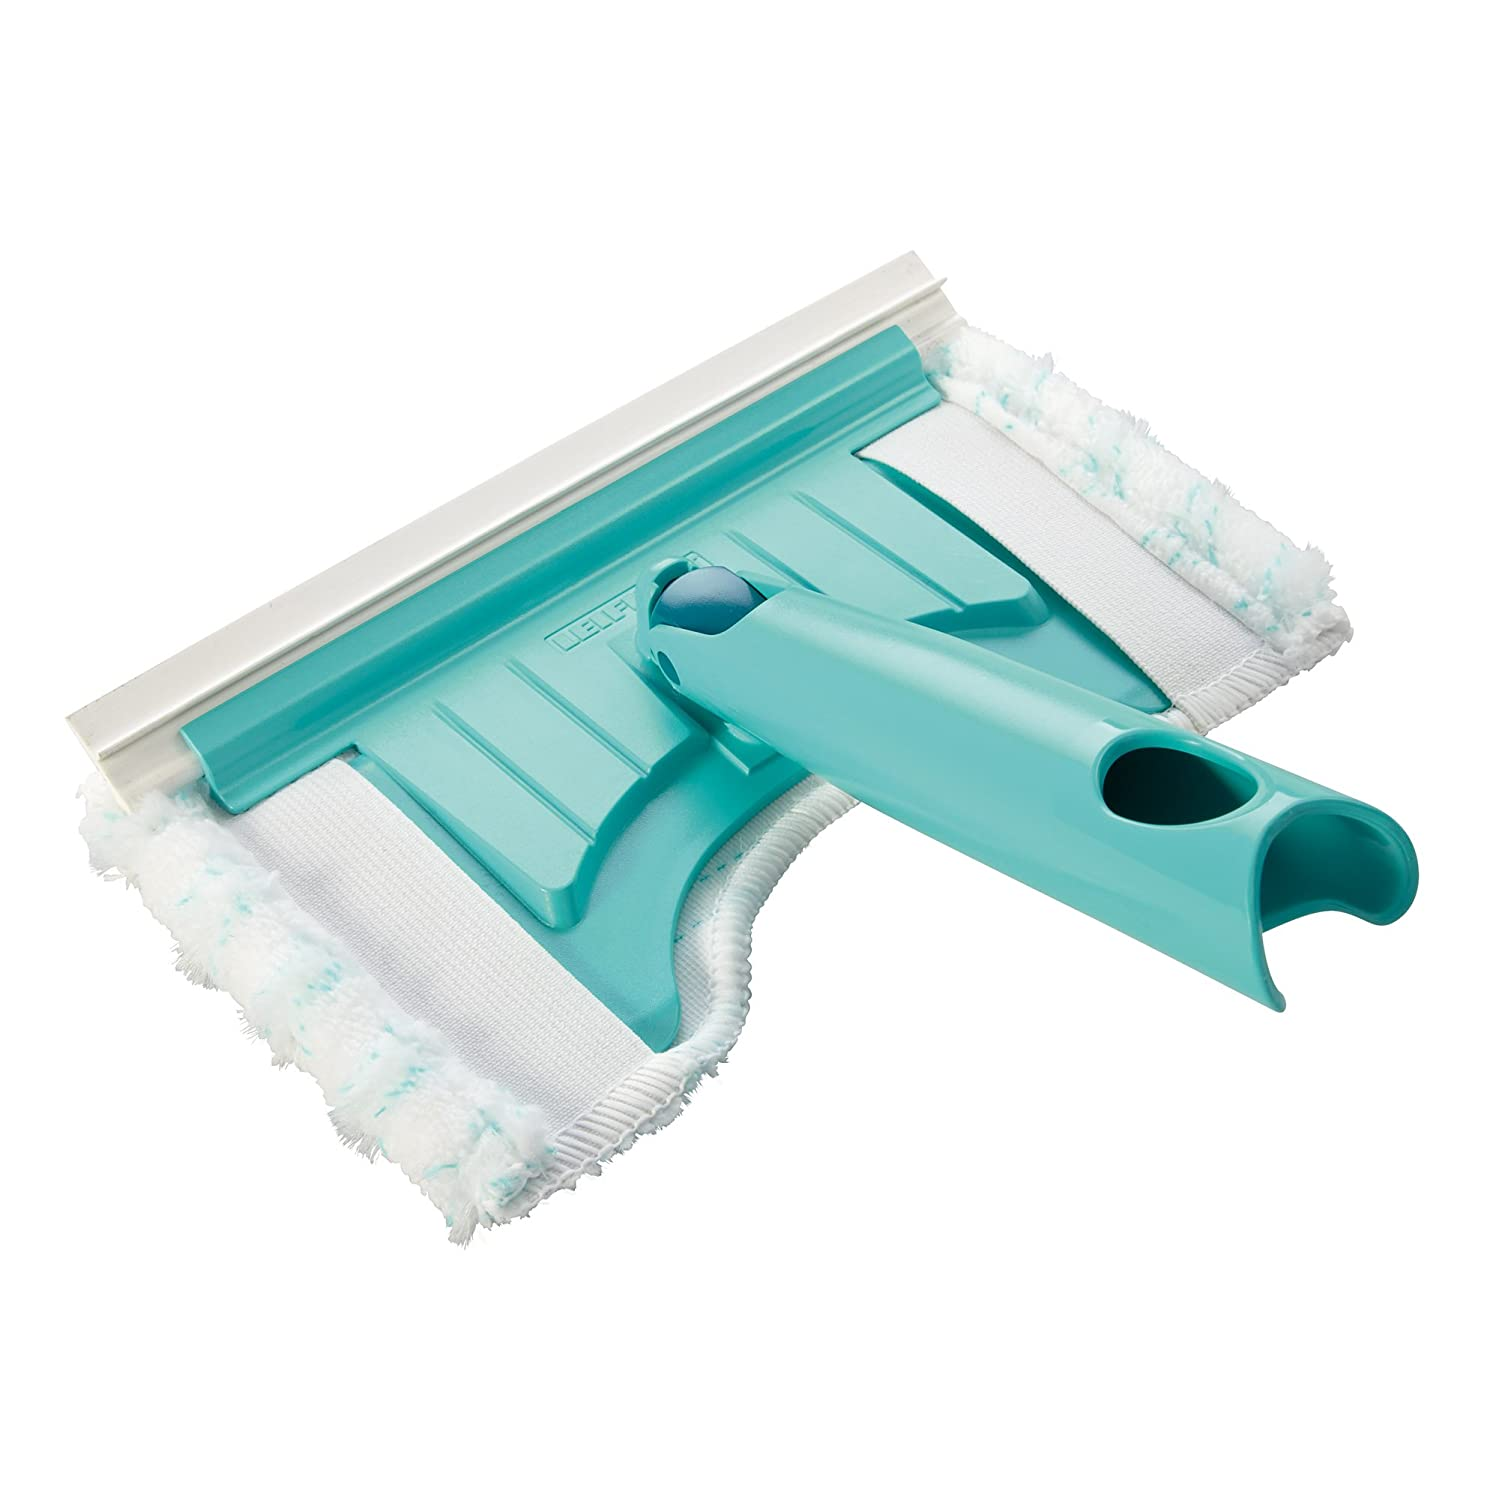 Leifheit Click System Bath Scrubber Flexi Pad with Fixture Cutout, Turquoise 41701